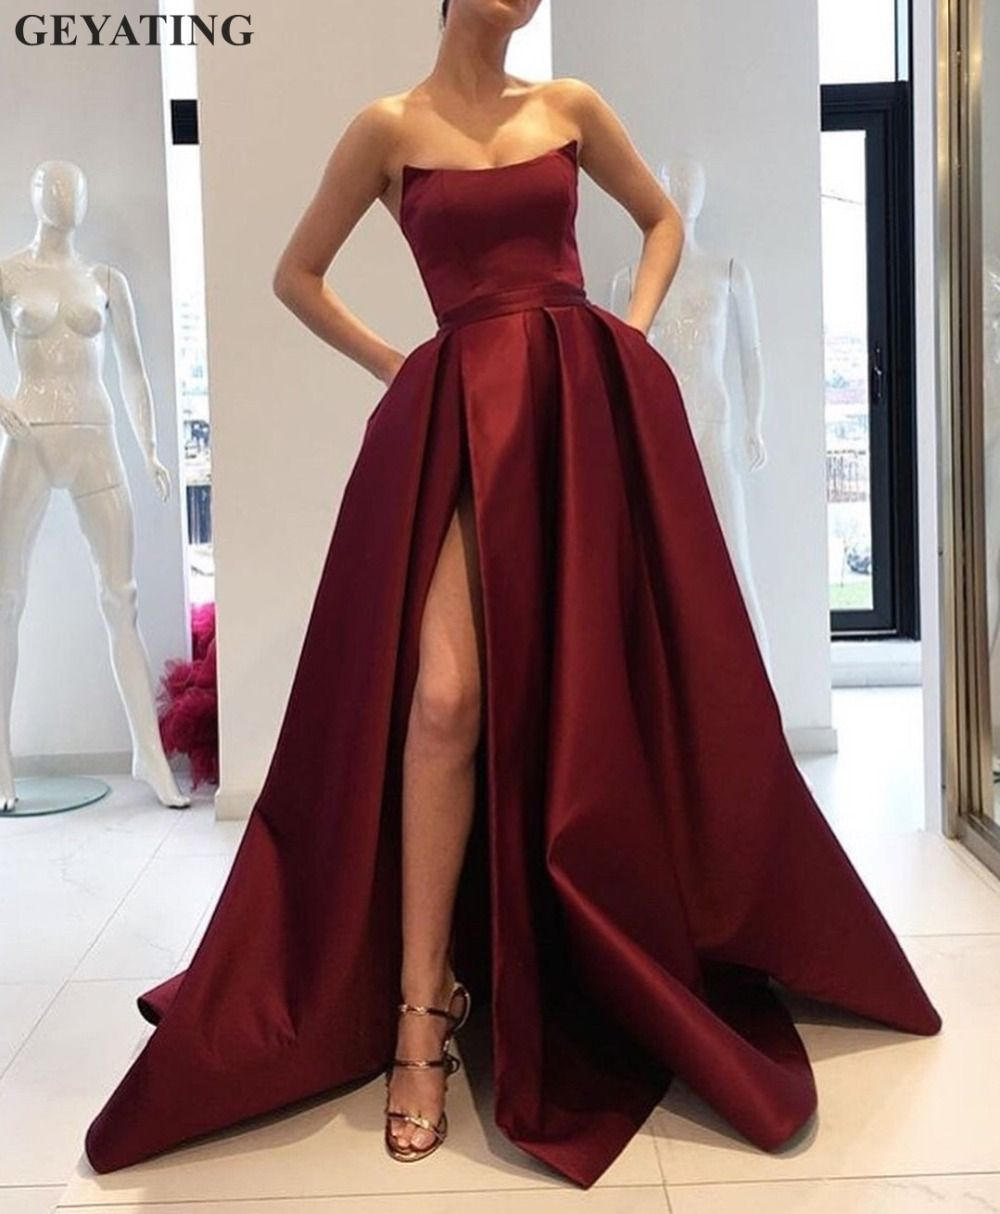 2018 Burgundy Prom Dresses with Pockets Side Slit Strapless Satin Elegant Long Evening Party Gowns Wine Red Women Formal Dress